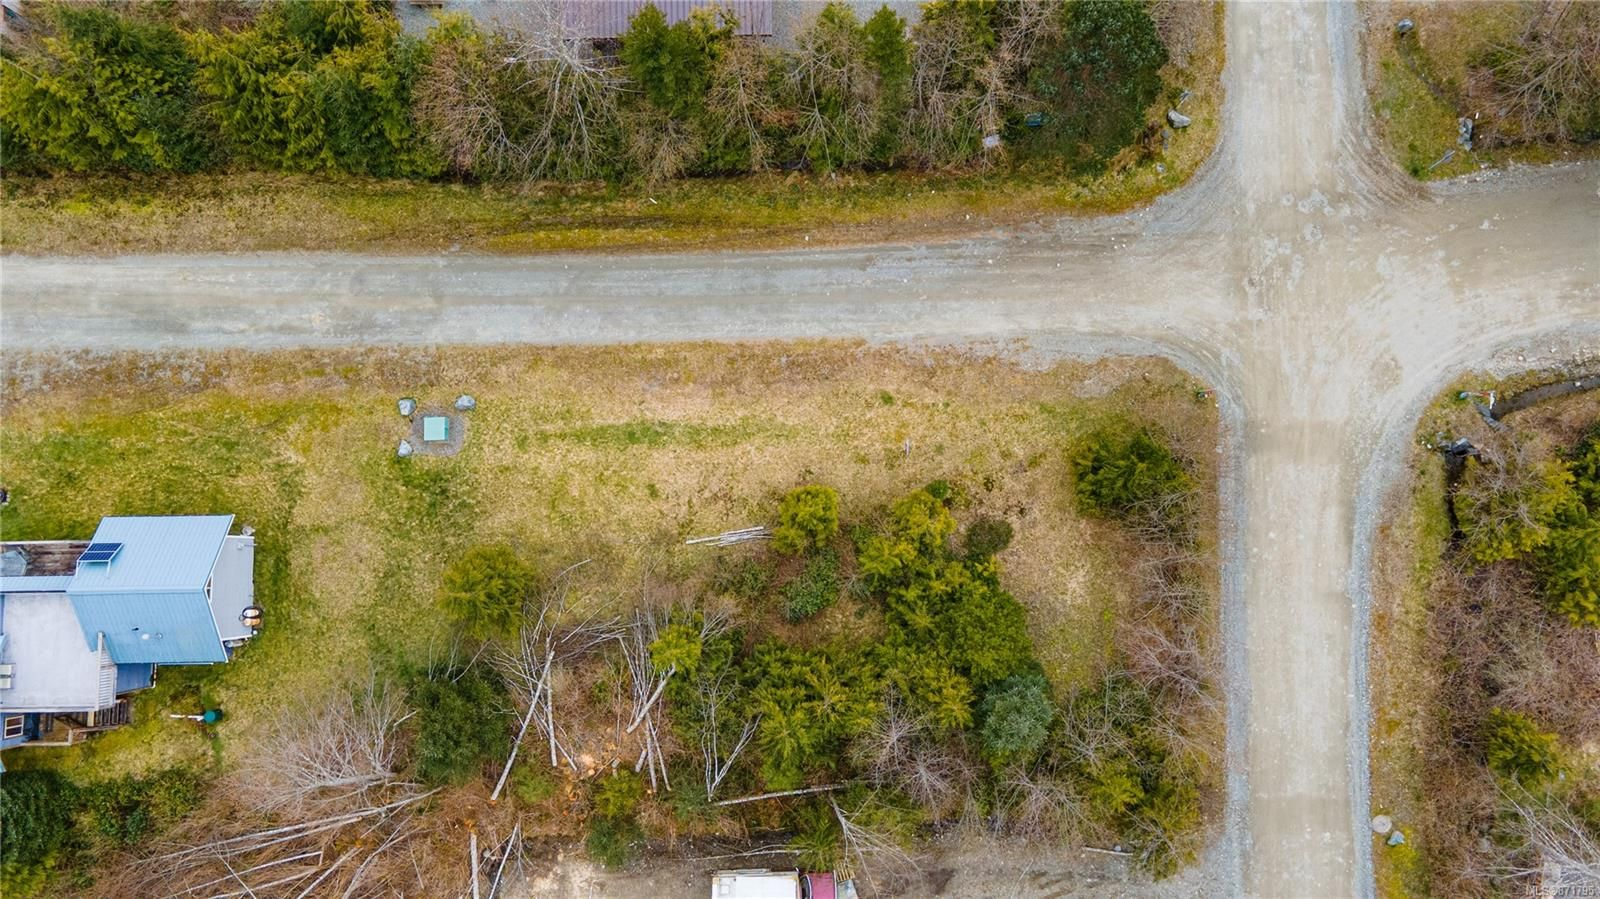 Main Photo: 1154 Fourth Ave in : PA Salmon Beach Land for sale (Port Alberni)  : MLS®# 871795